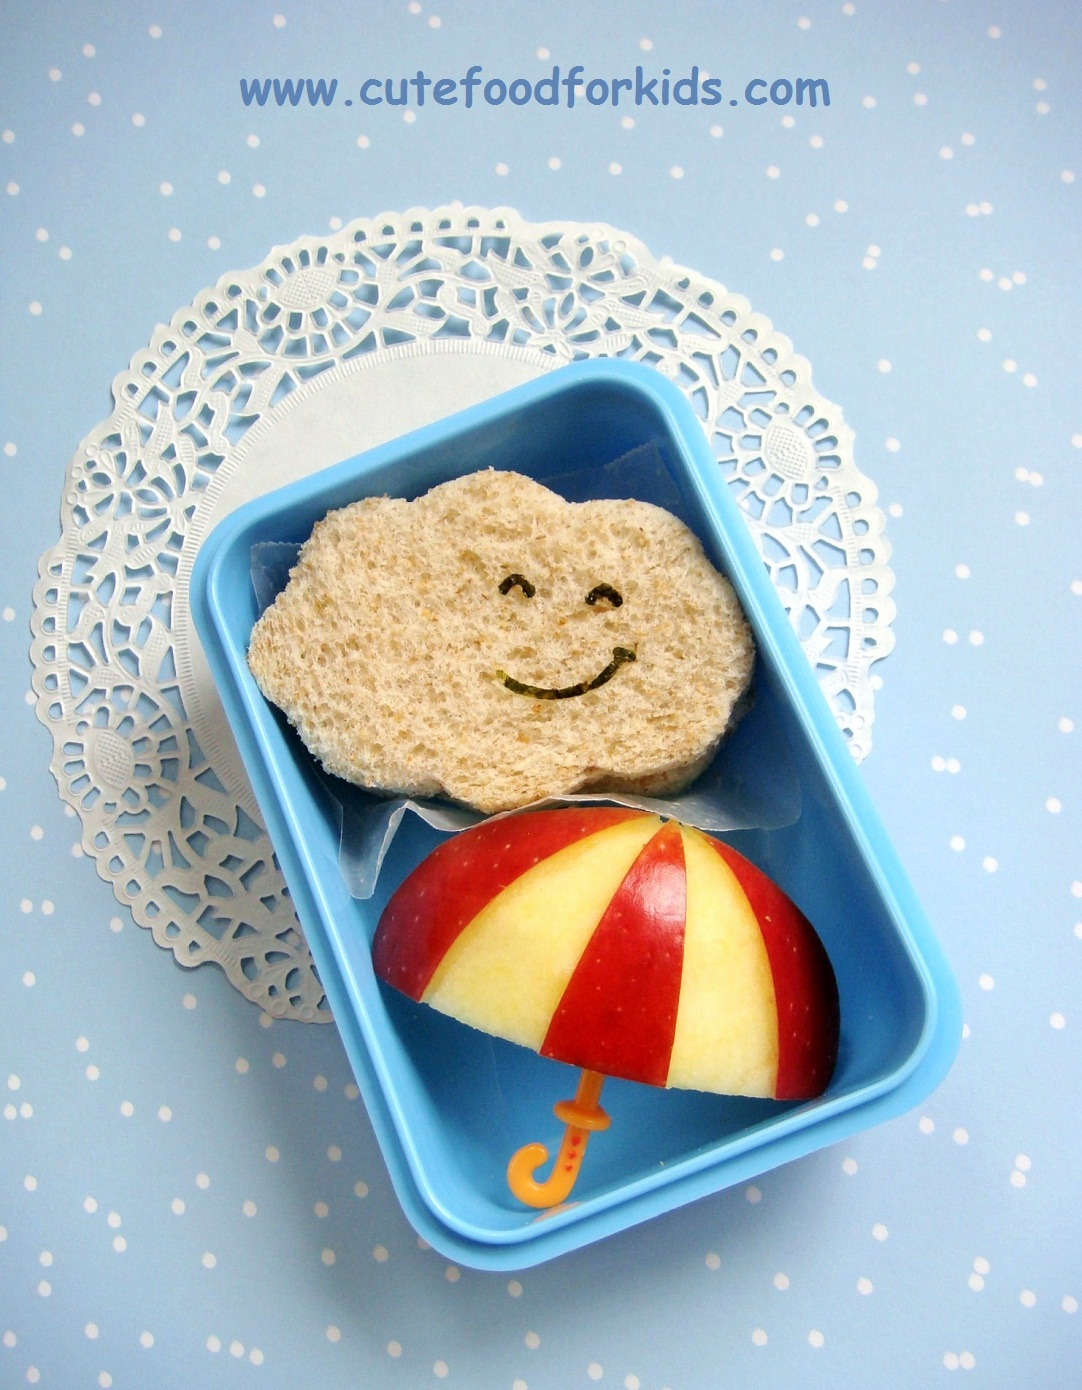 Cute food for kids june 2011 for Fun kid food crafts